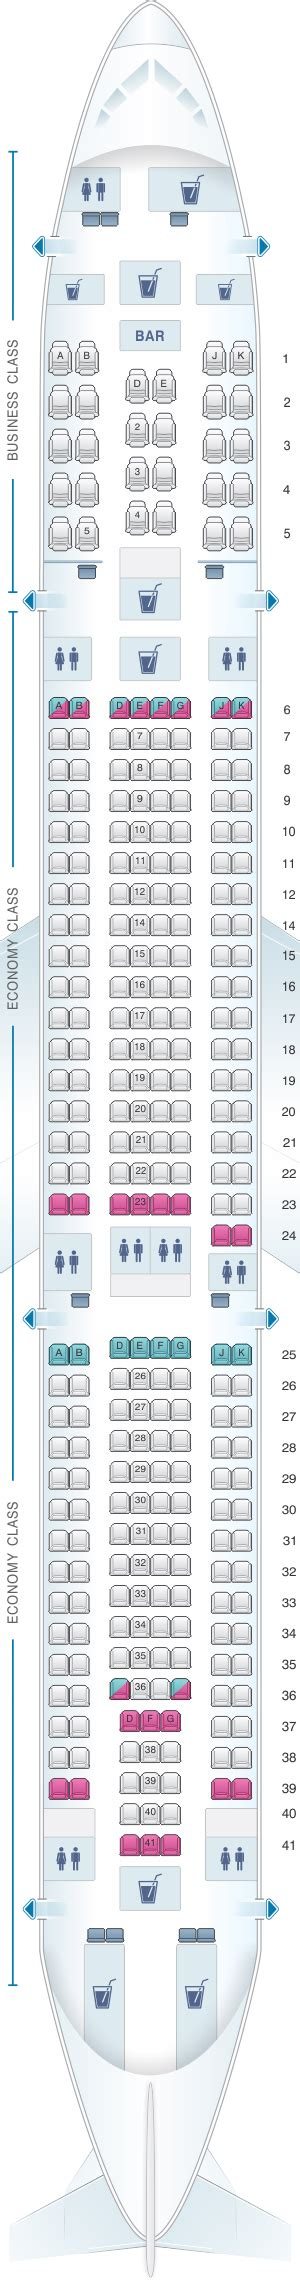 Seat Map Turkish Airlines Airbus A330 300 | SeatMaestro